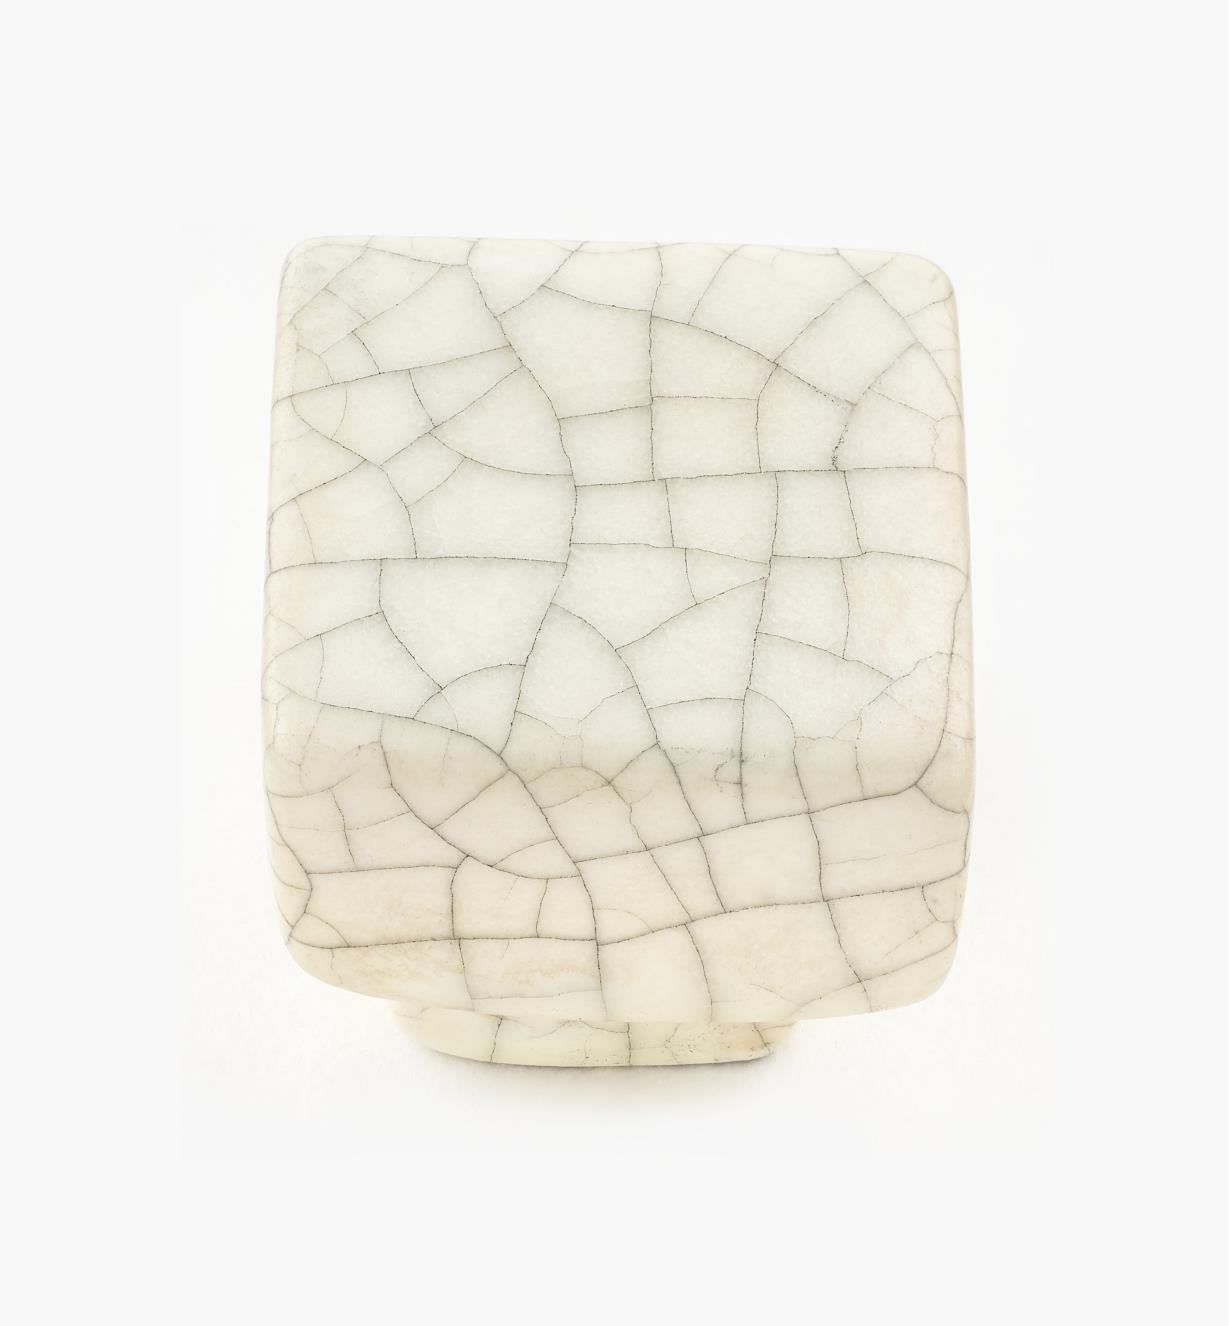 01W0550 - Crackle Hardware - Square Knob